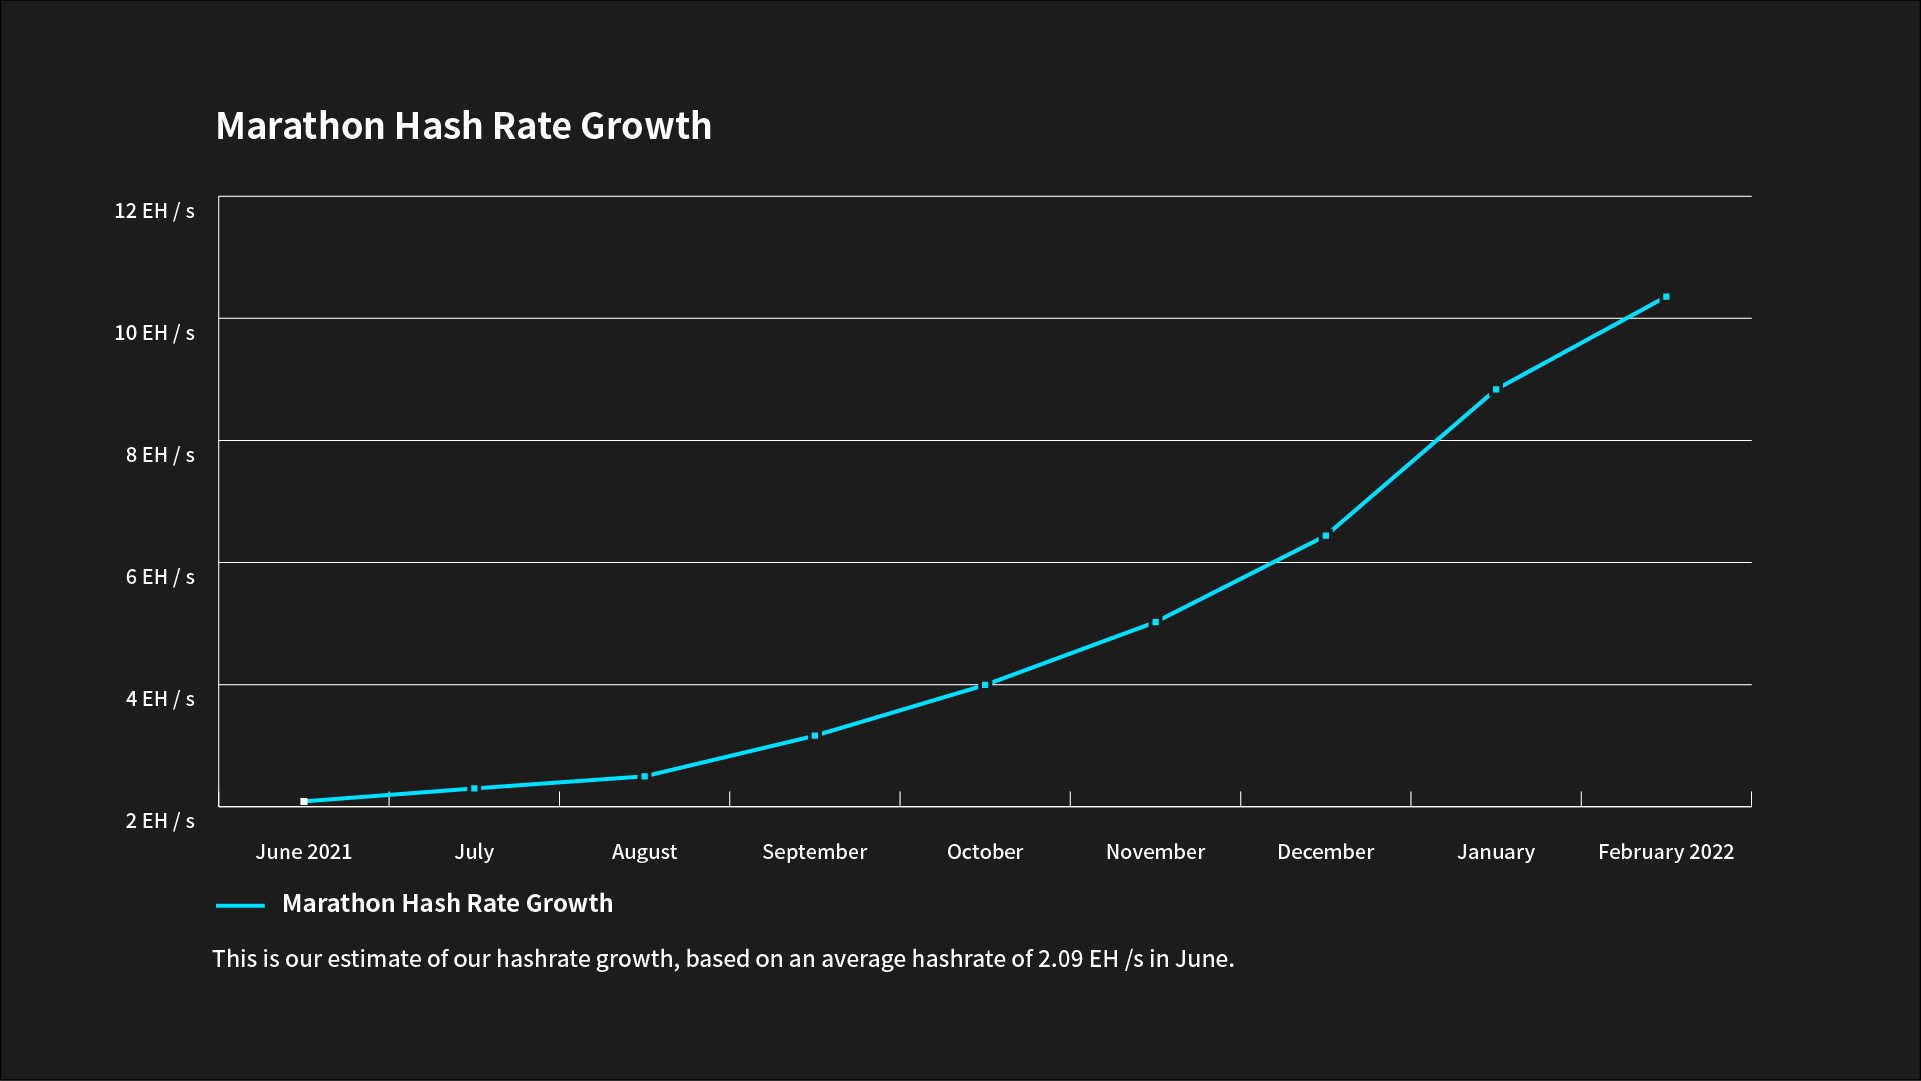 A chart depicting Marathon's hash rate growth from June 2021 until February 2022.